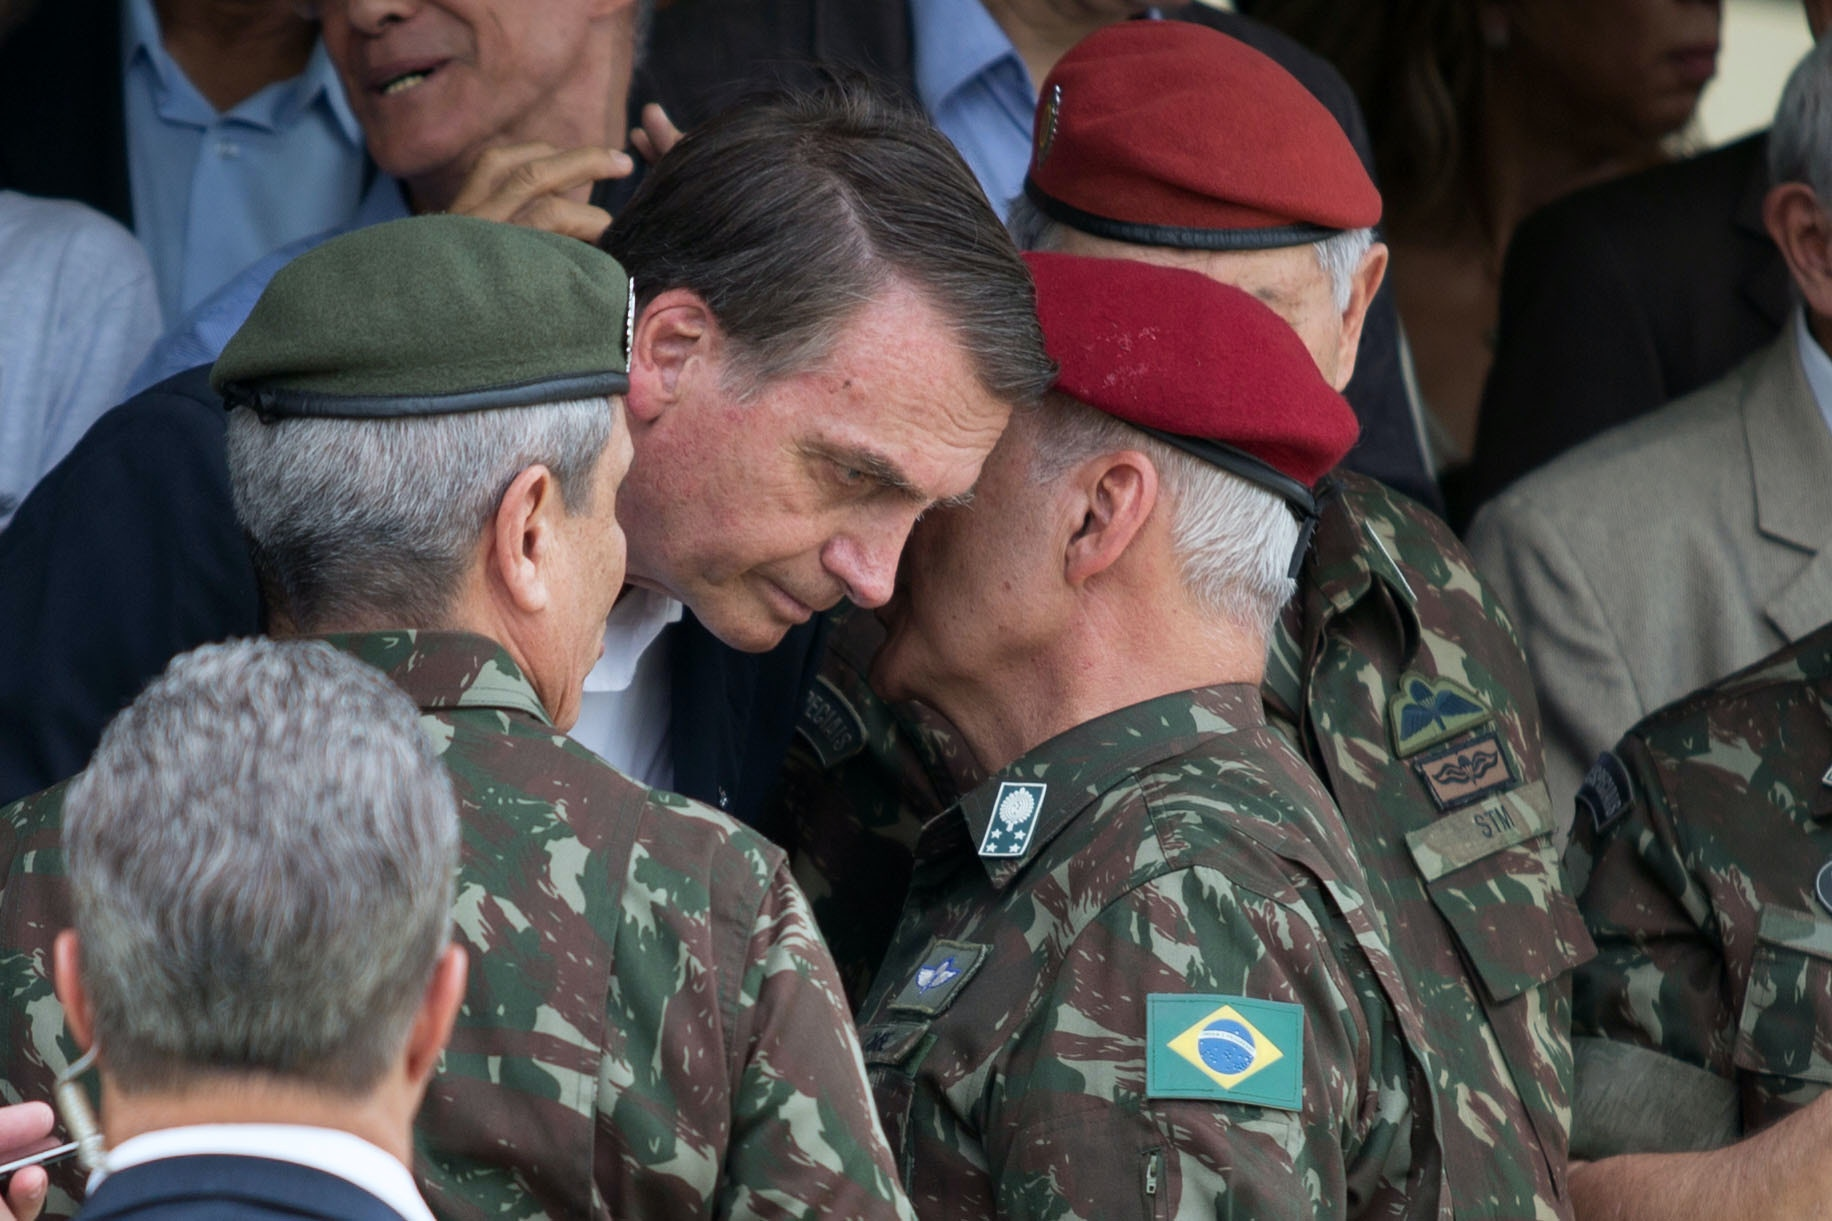 Brazilian Army General Luiz Eduardo Ramos Baptista Pereira (R) speaks to Brazilian President-elect Jair Bolsonaro (C), during the graduation ceremony of new paratroopers at the Parachute Infantry Battalion Vila Militar, in Rio de Janeiro, Brazil, on November 24, 2018. (Photo by Fernando Souza / AFP)        (Photo credit should read FERNANDO SOUZA/AFP via Getty Images)